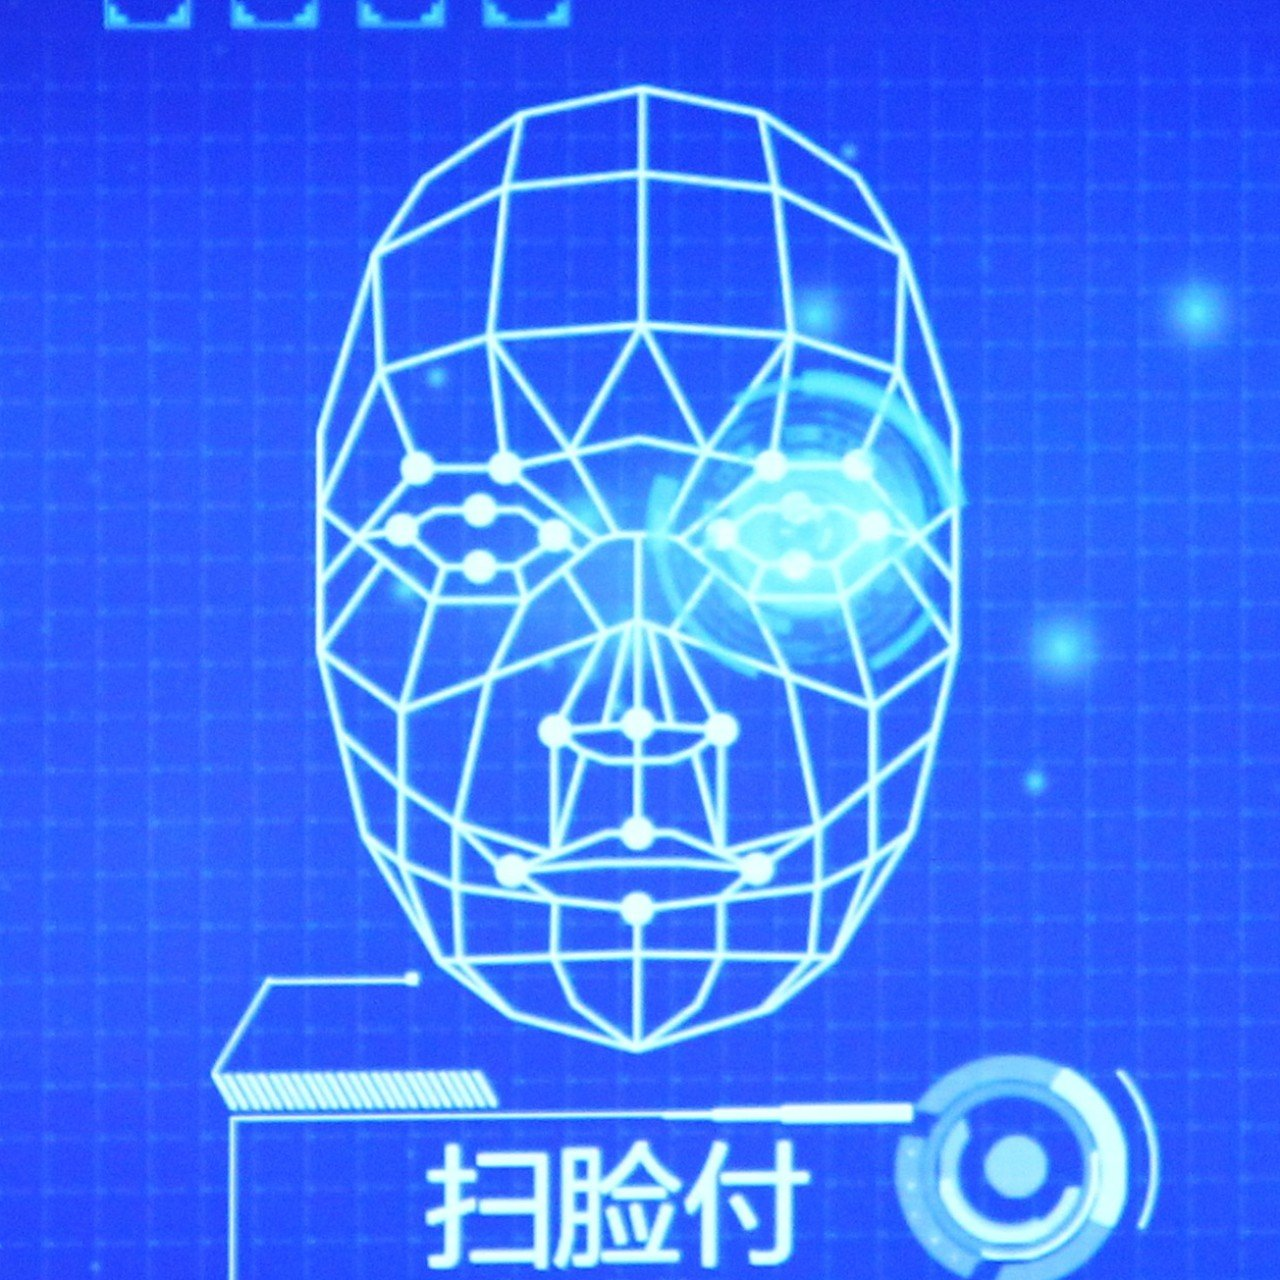 Chinese murder suspect 'caught by AI software that spotted